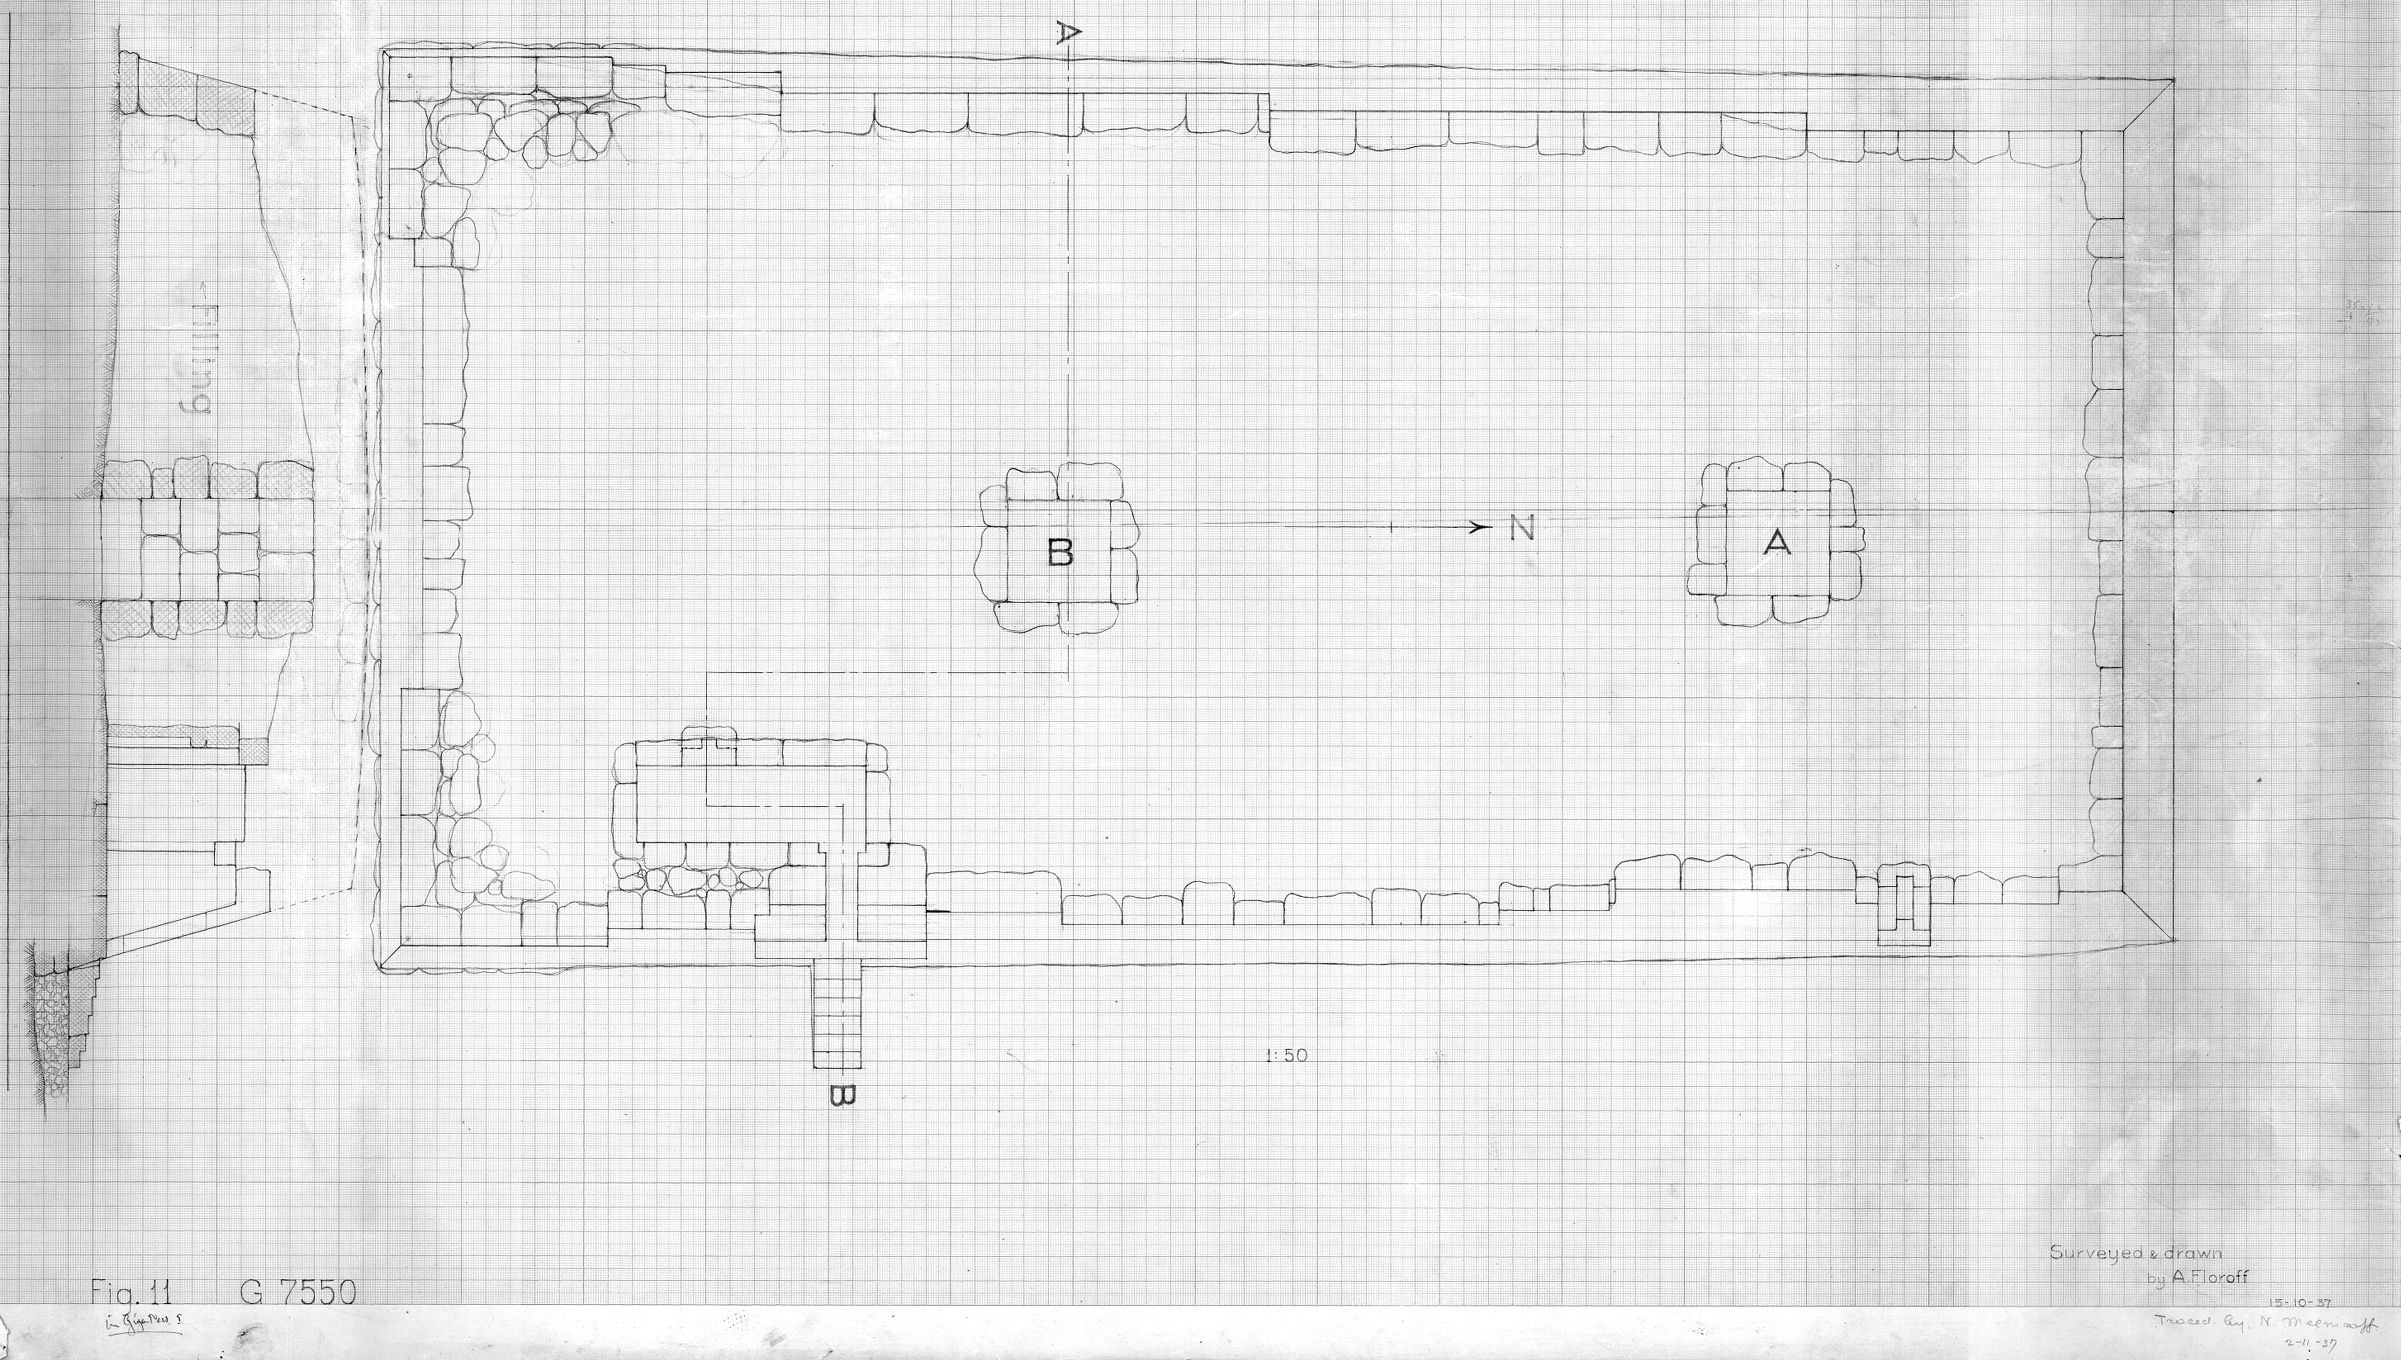 Maps and plans: Plan of G 7550